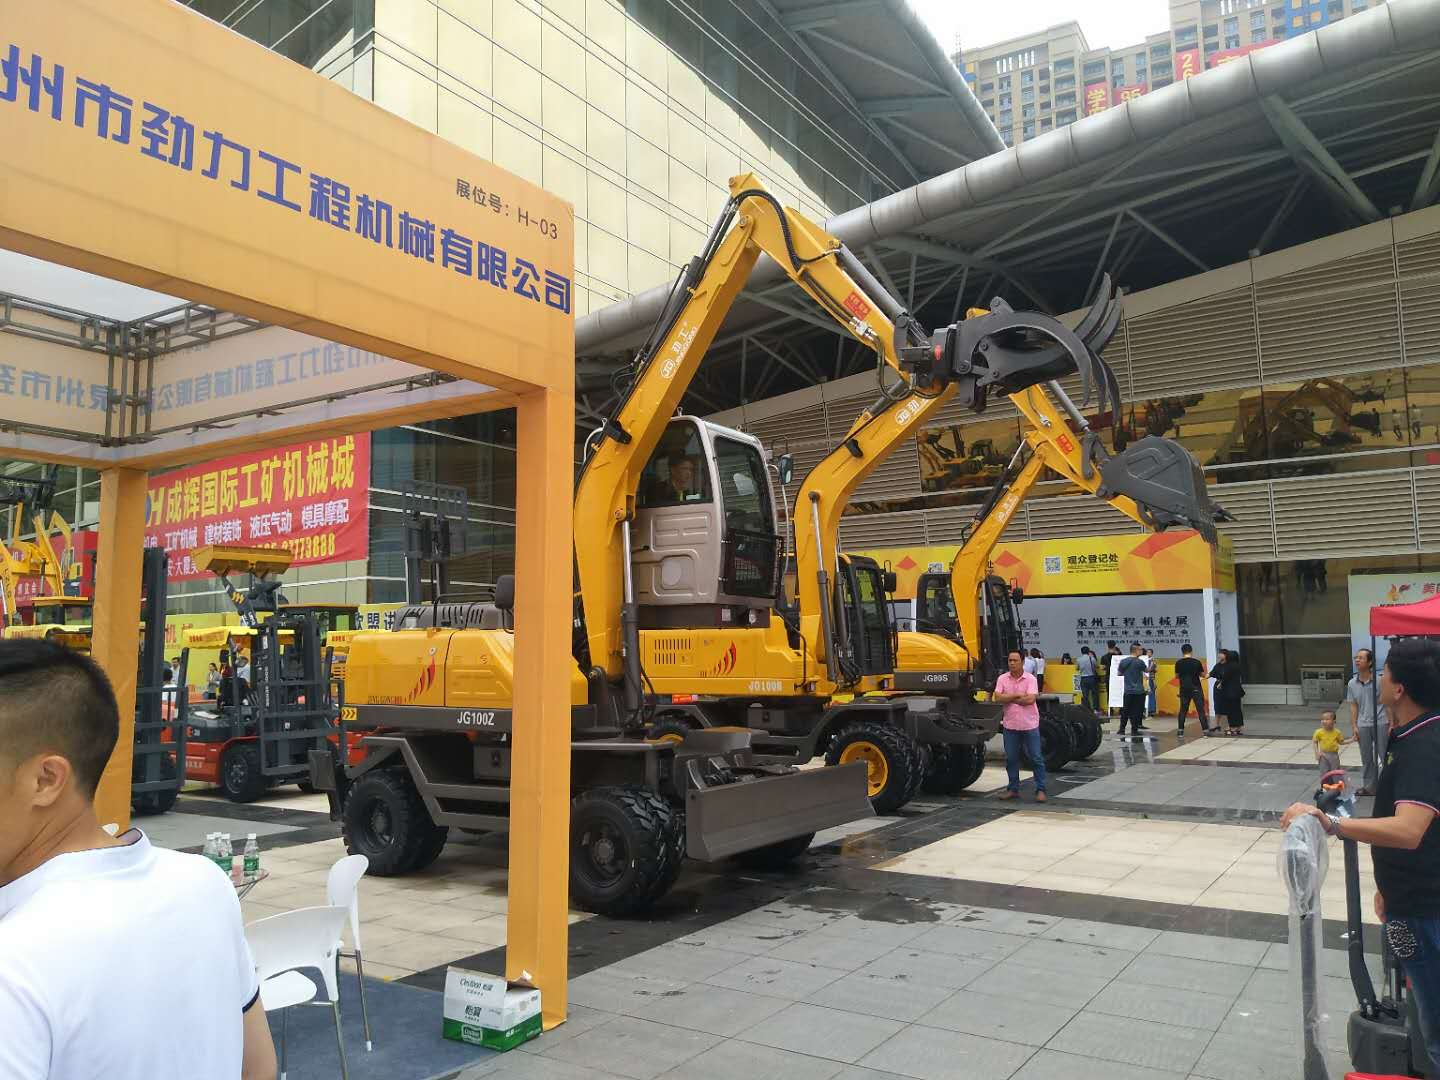 Jing Gong 100Z grapple excavator with liftable cab